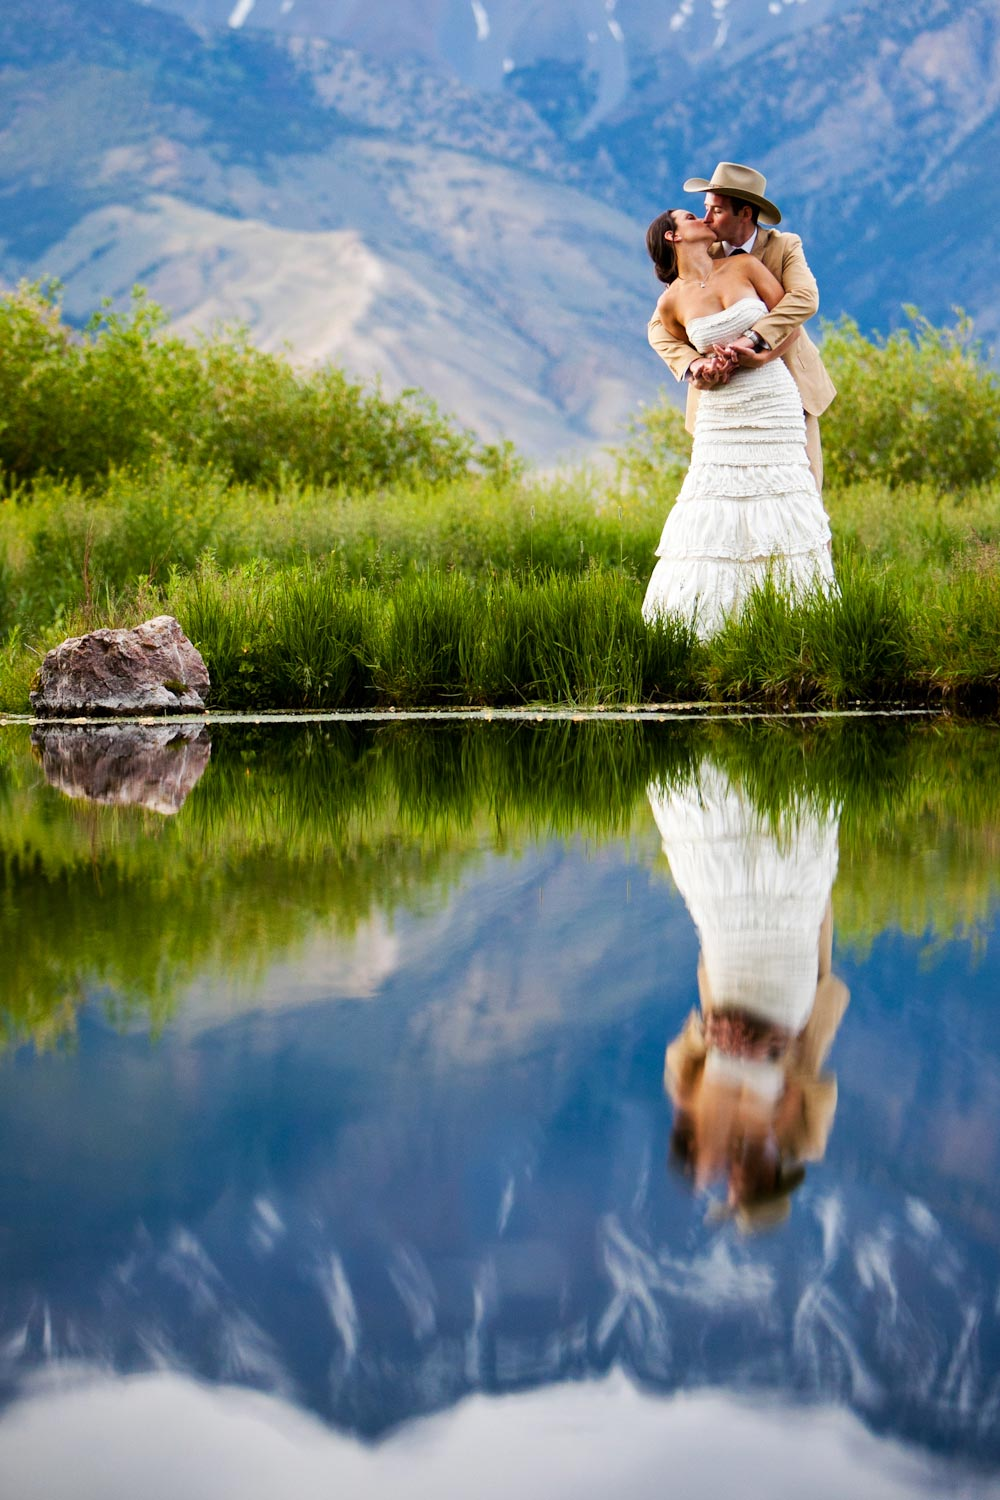 mackay-idaho-wedding-photographer-019